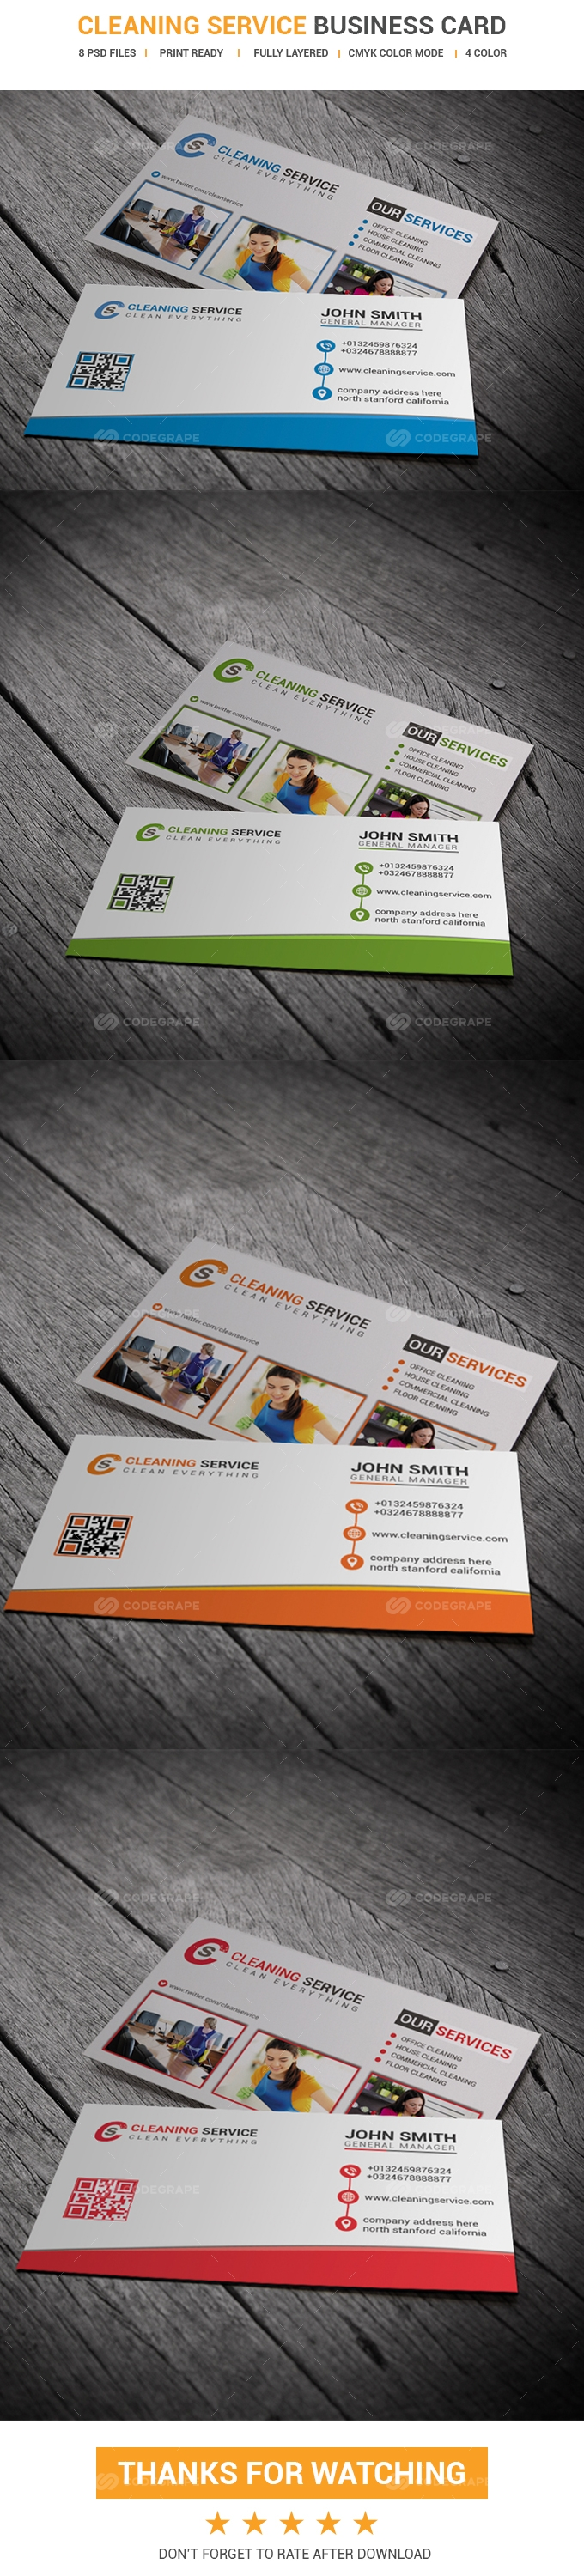 Cleaning service business card print codegrape cleaning service business card magicingreecefo Gallery